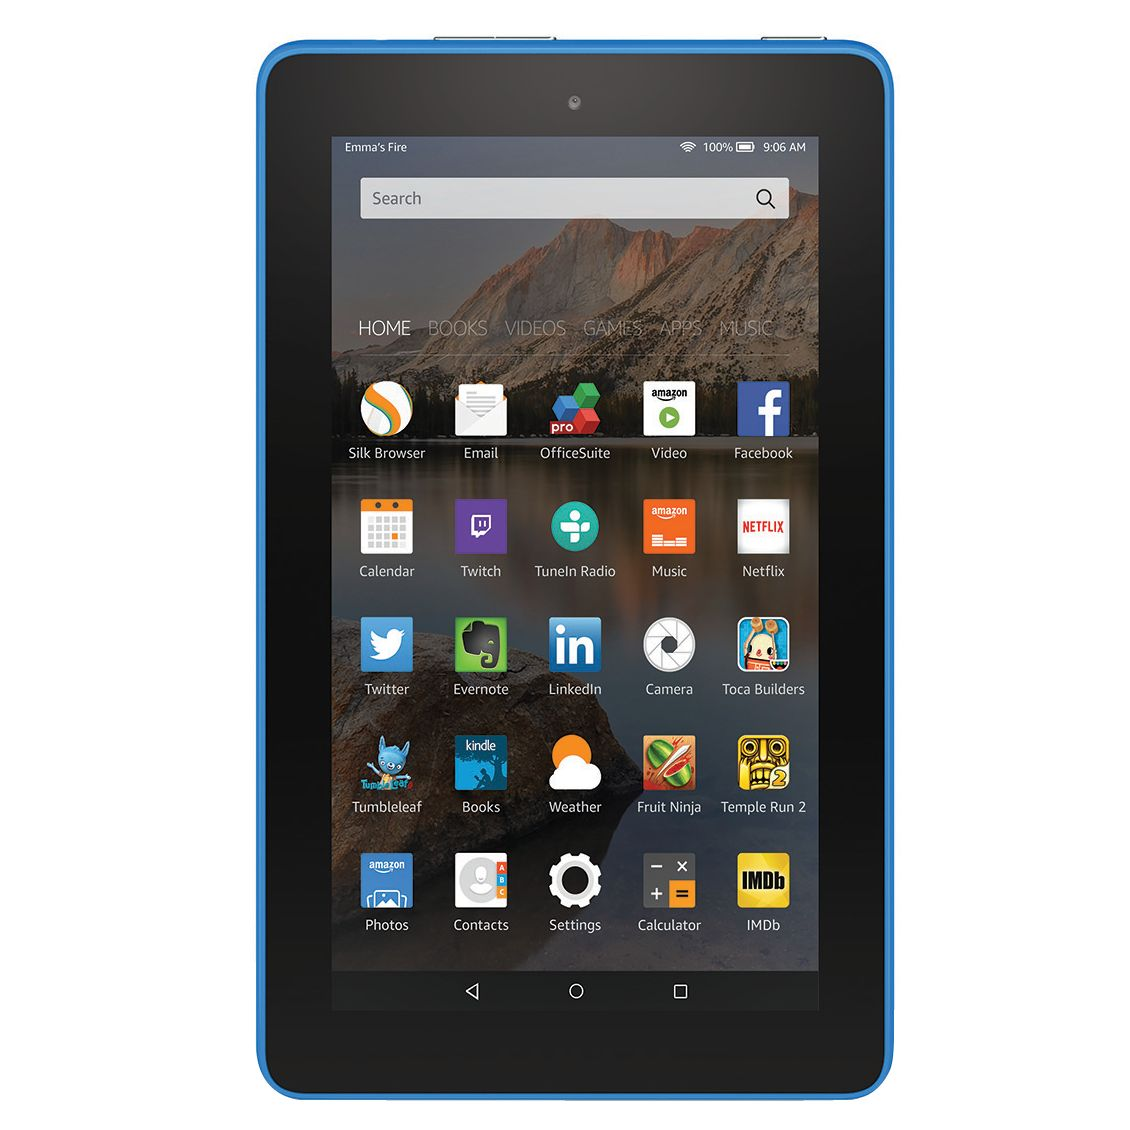 Amazon New Amazon Fire 7 Tablet, Quad-core, Fire OS, 7, Wi-Fi, 16GB